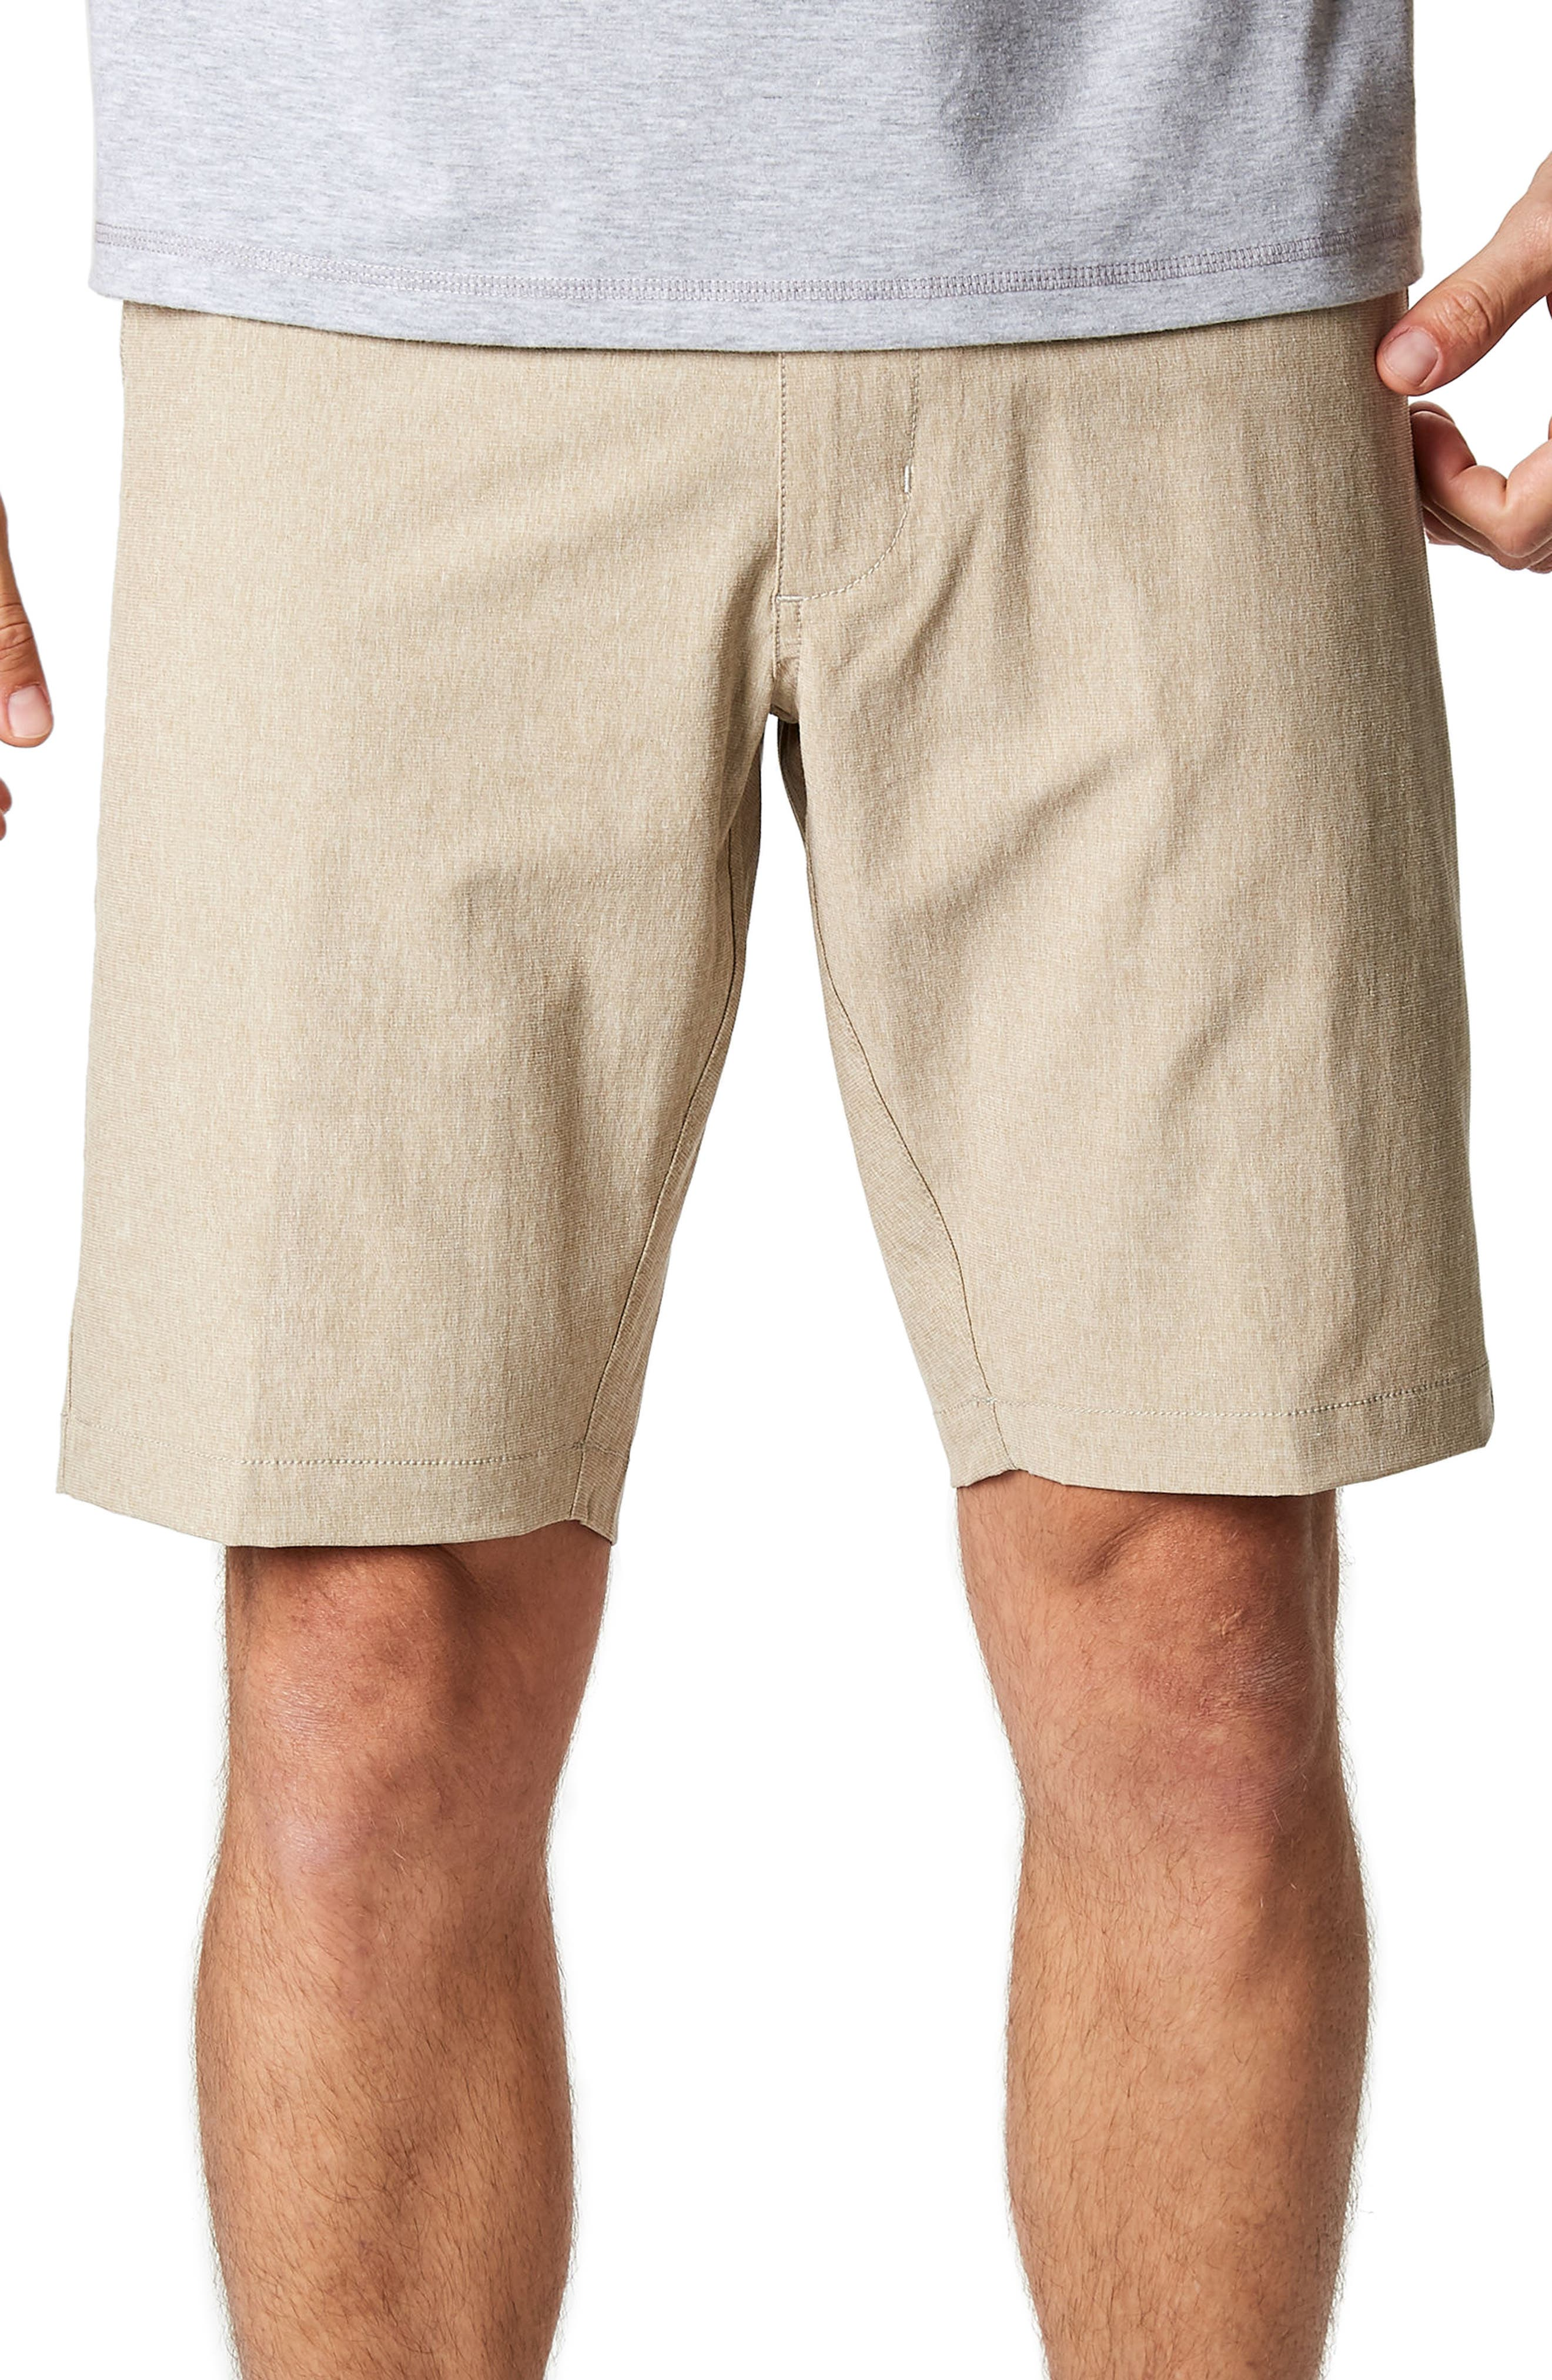 Adrenaline Stretch Shorts,                             Main thumbnail 1, color,                             Khaki